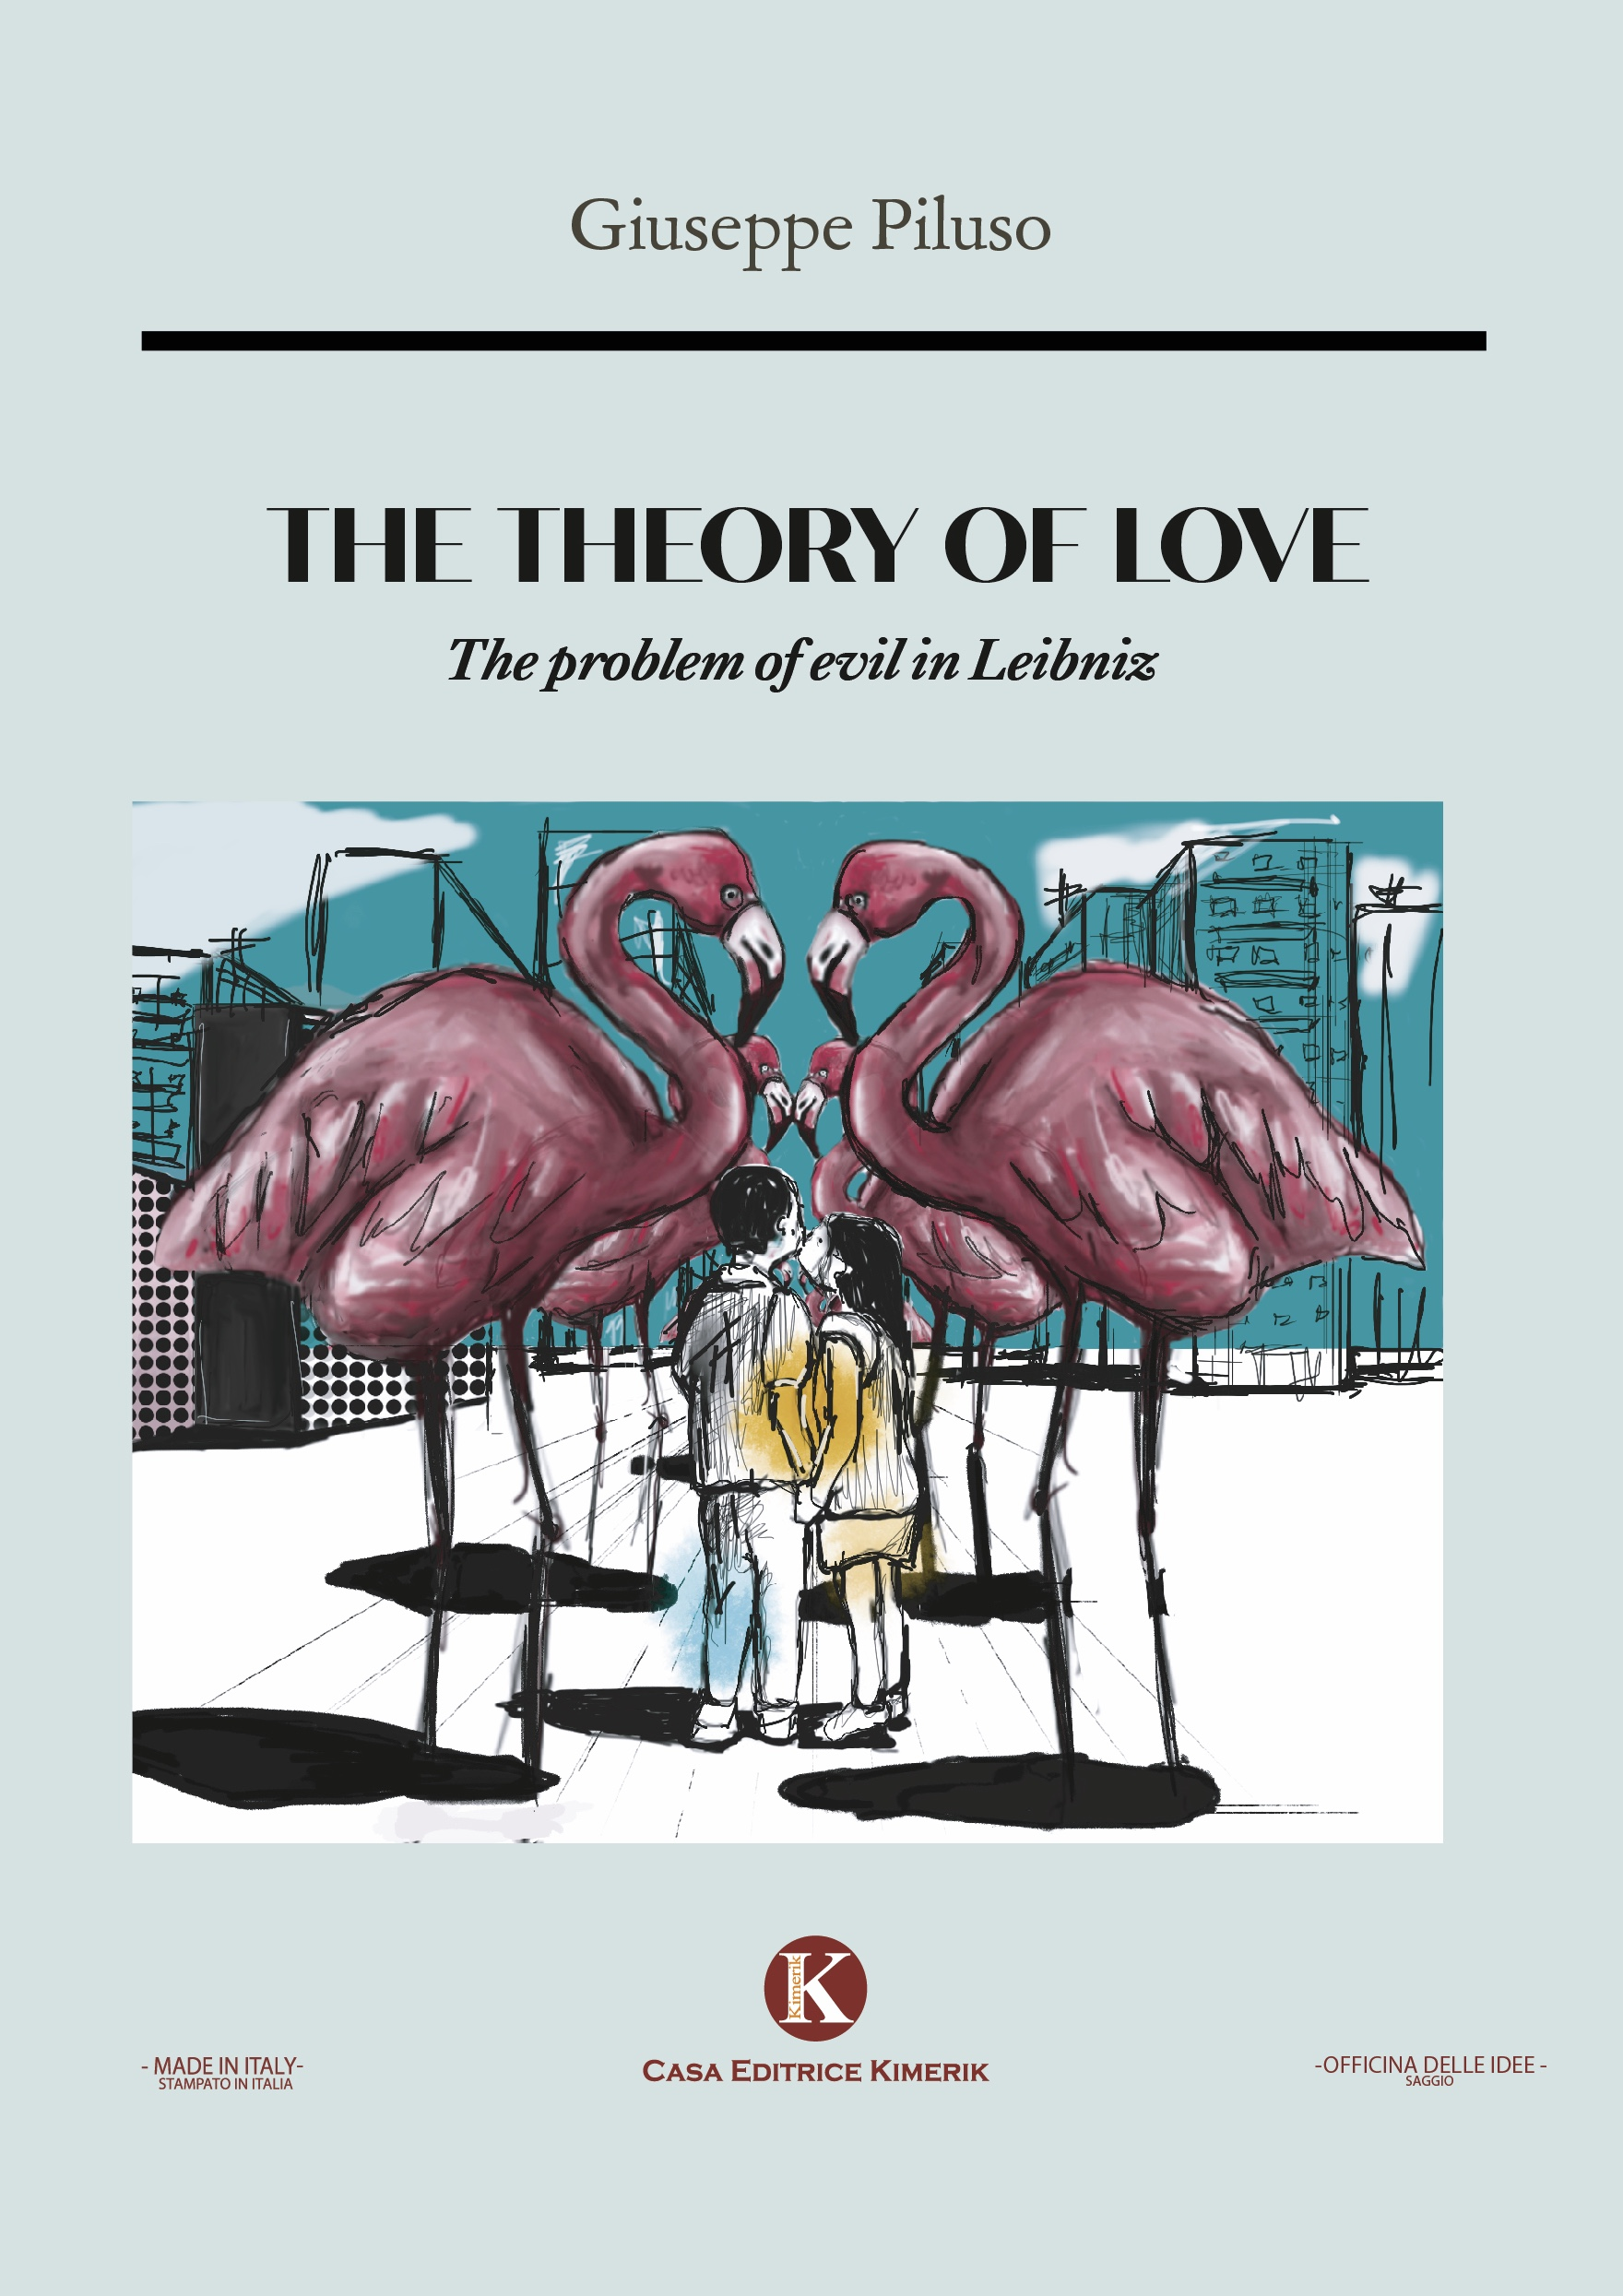 The theory of love